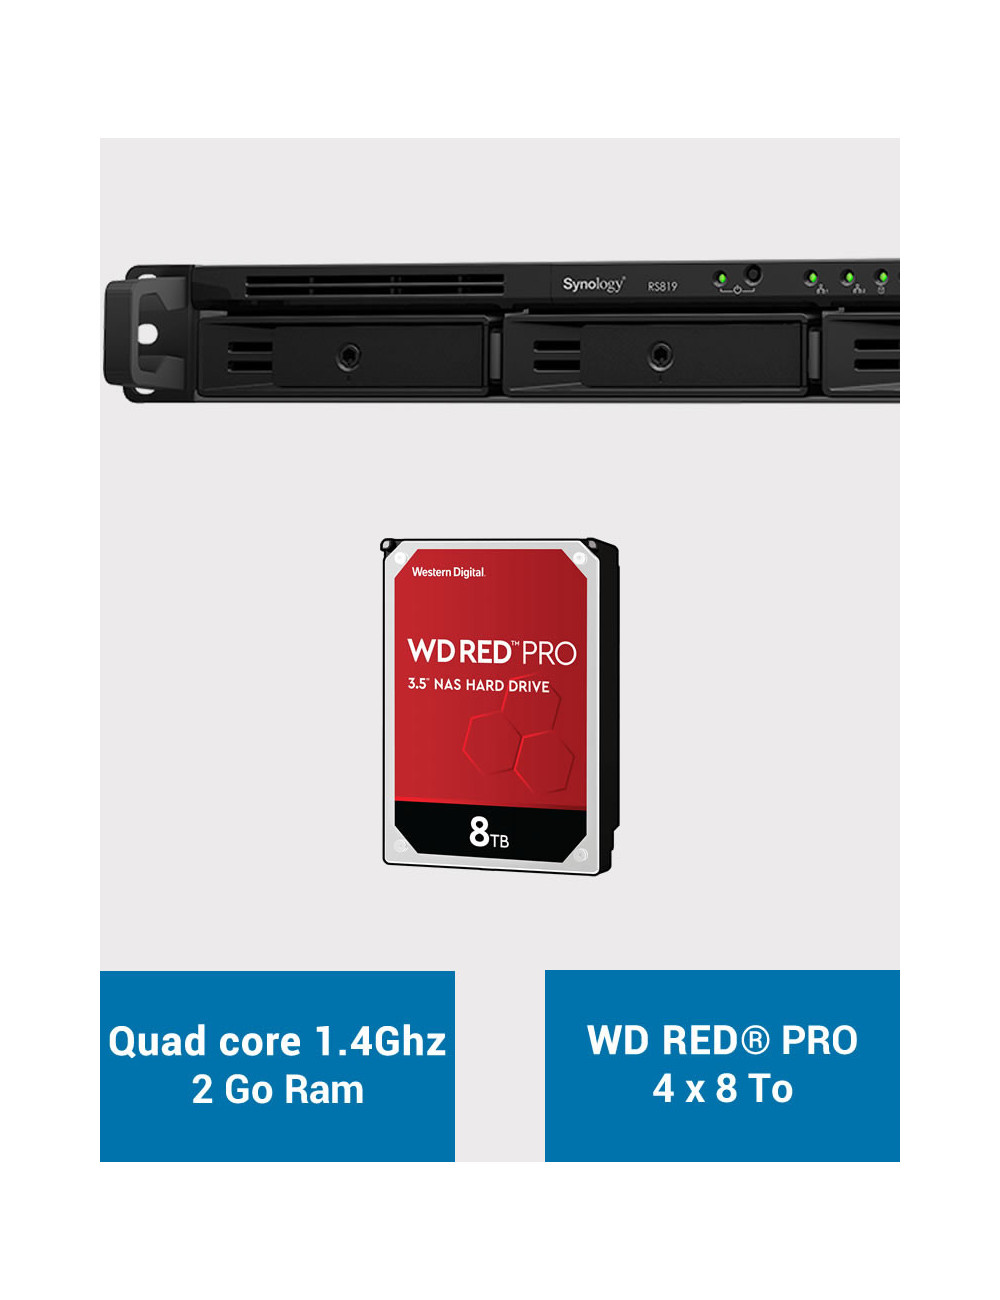 Synology RS819 Serveur NAS WD RED PRO 32To (4x8To)